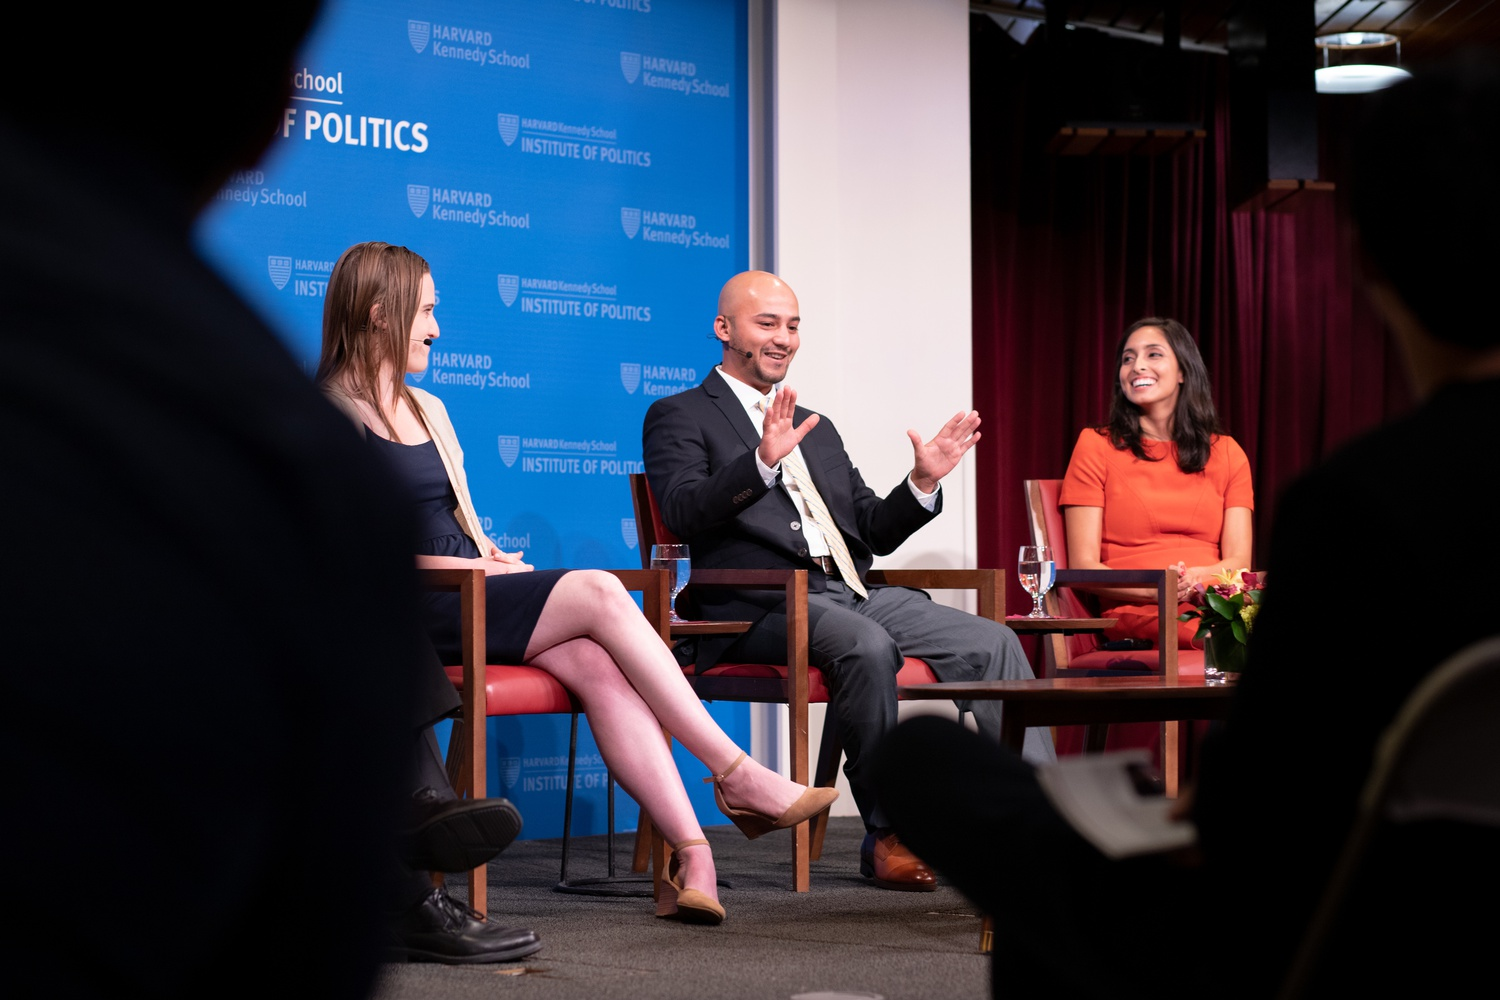 Chelsea Janes from the Washington Post (left), Musadiq Bidar from CBS News (middle) and Marianna Sotomayor from NBC News (right) chat with Washington Post correspondent Dan Balz (far left) about their first-hand experiences as reporters for the top candidates in the coming elections of 2020.